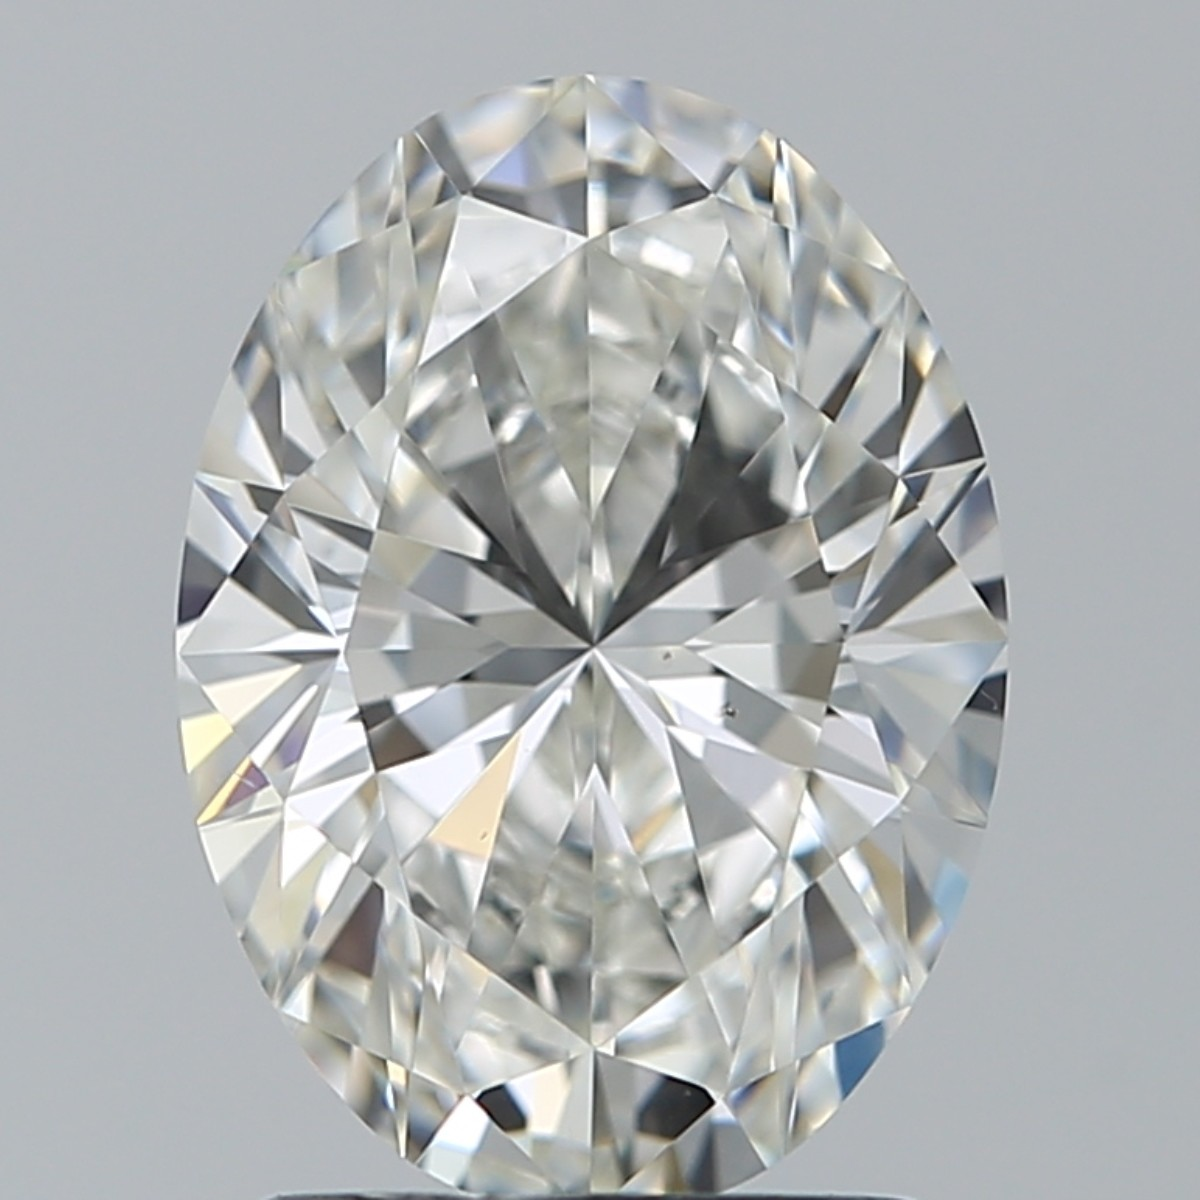 1.81 Carat Oval Diamond (G/VS2)